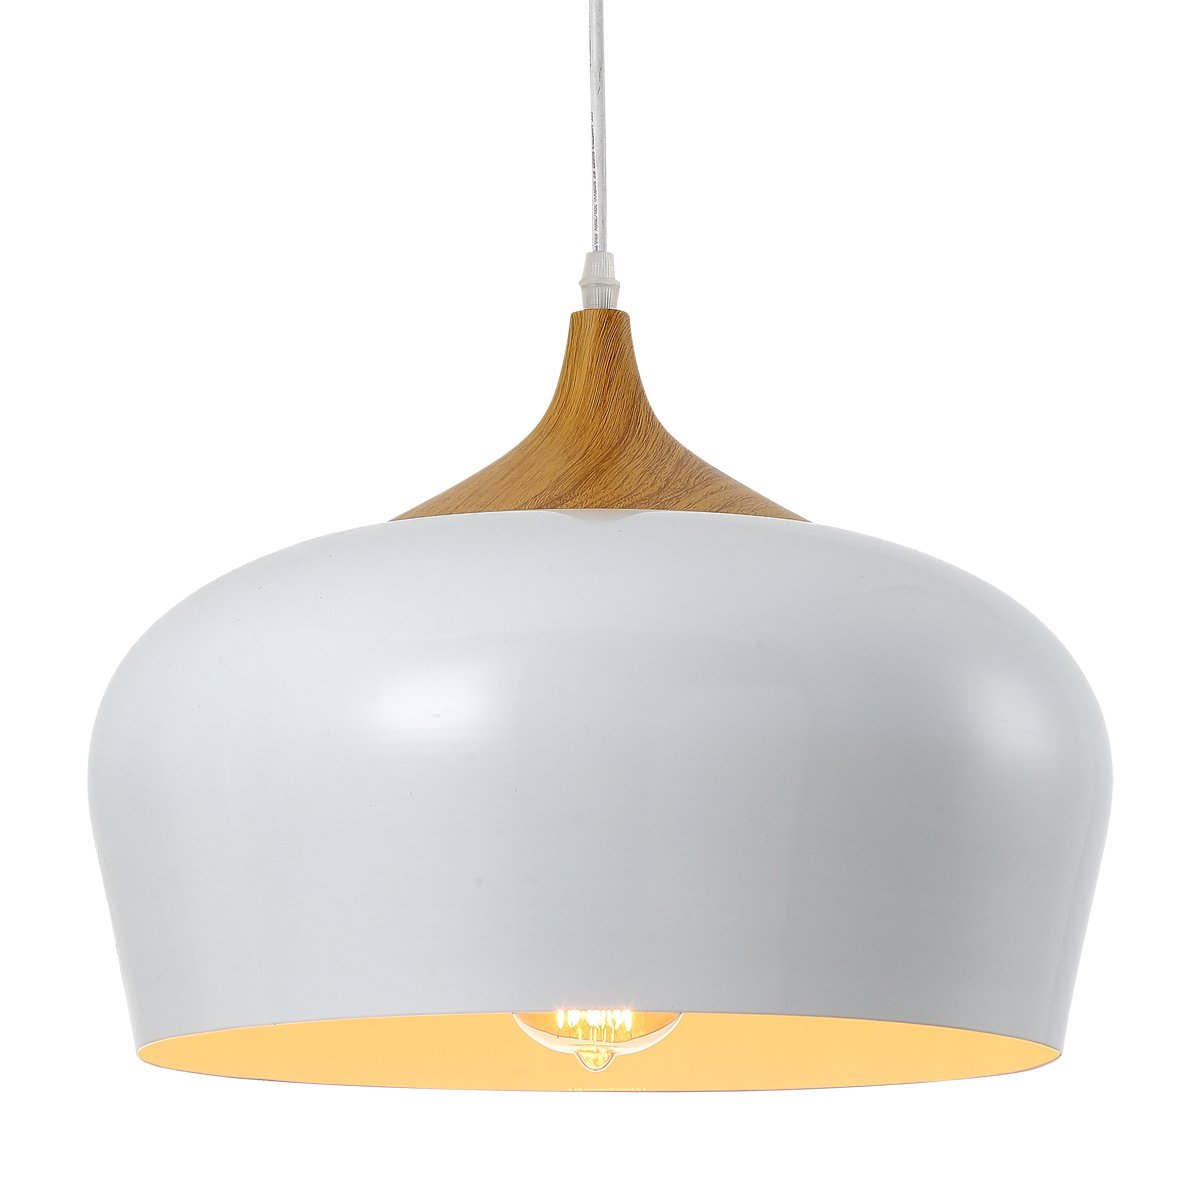 HOMIFORCE Modern Style 1-light Pendant Light with Shade in VintageIndustrial Edison Retro Style Hanging (Pisces White)